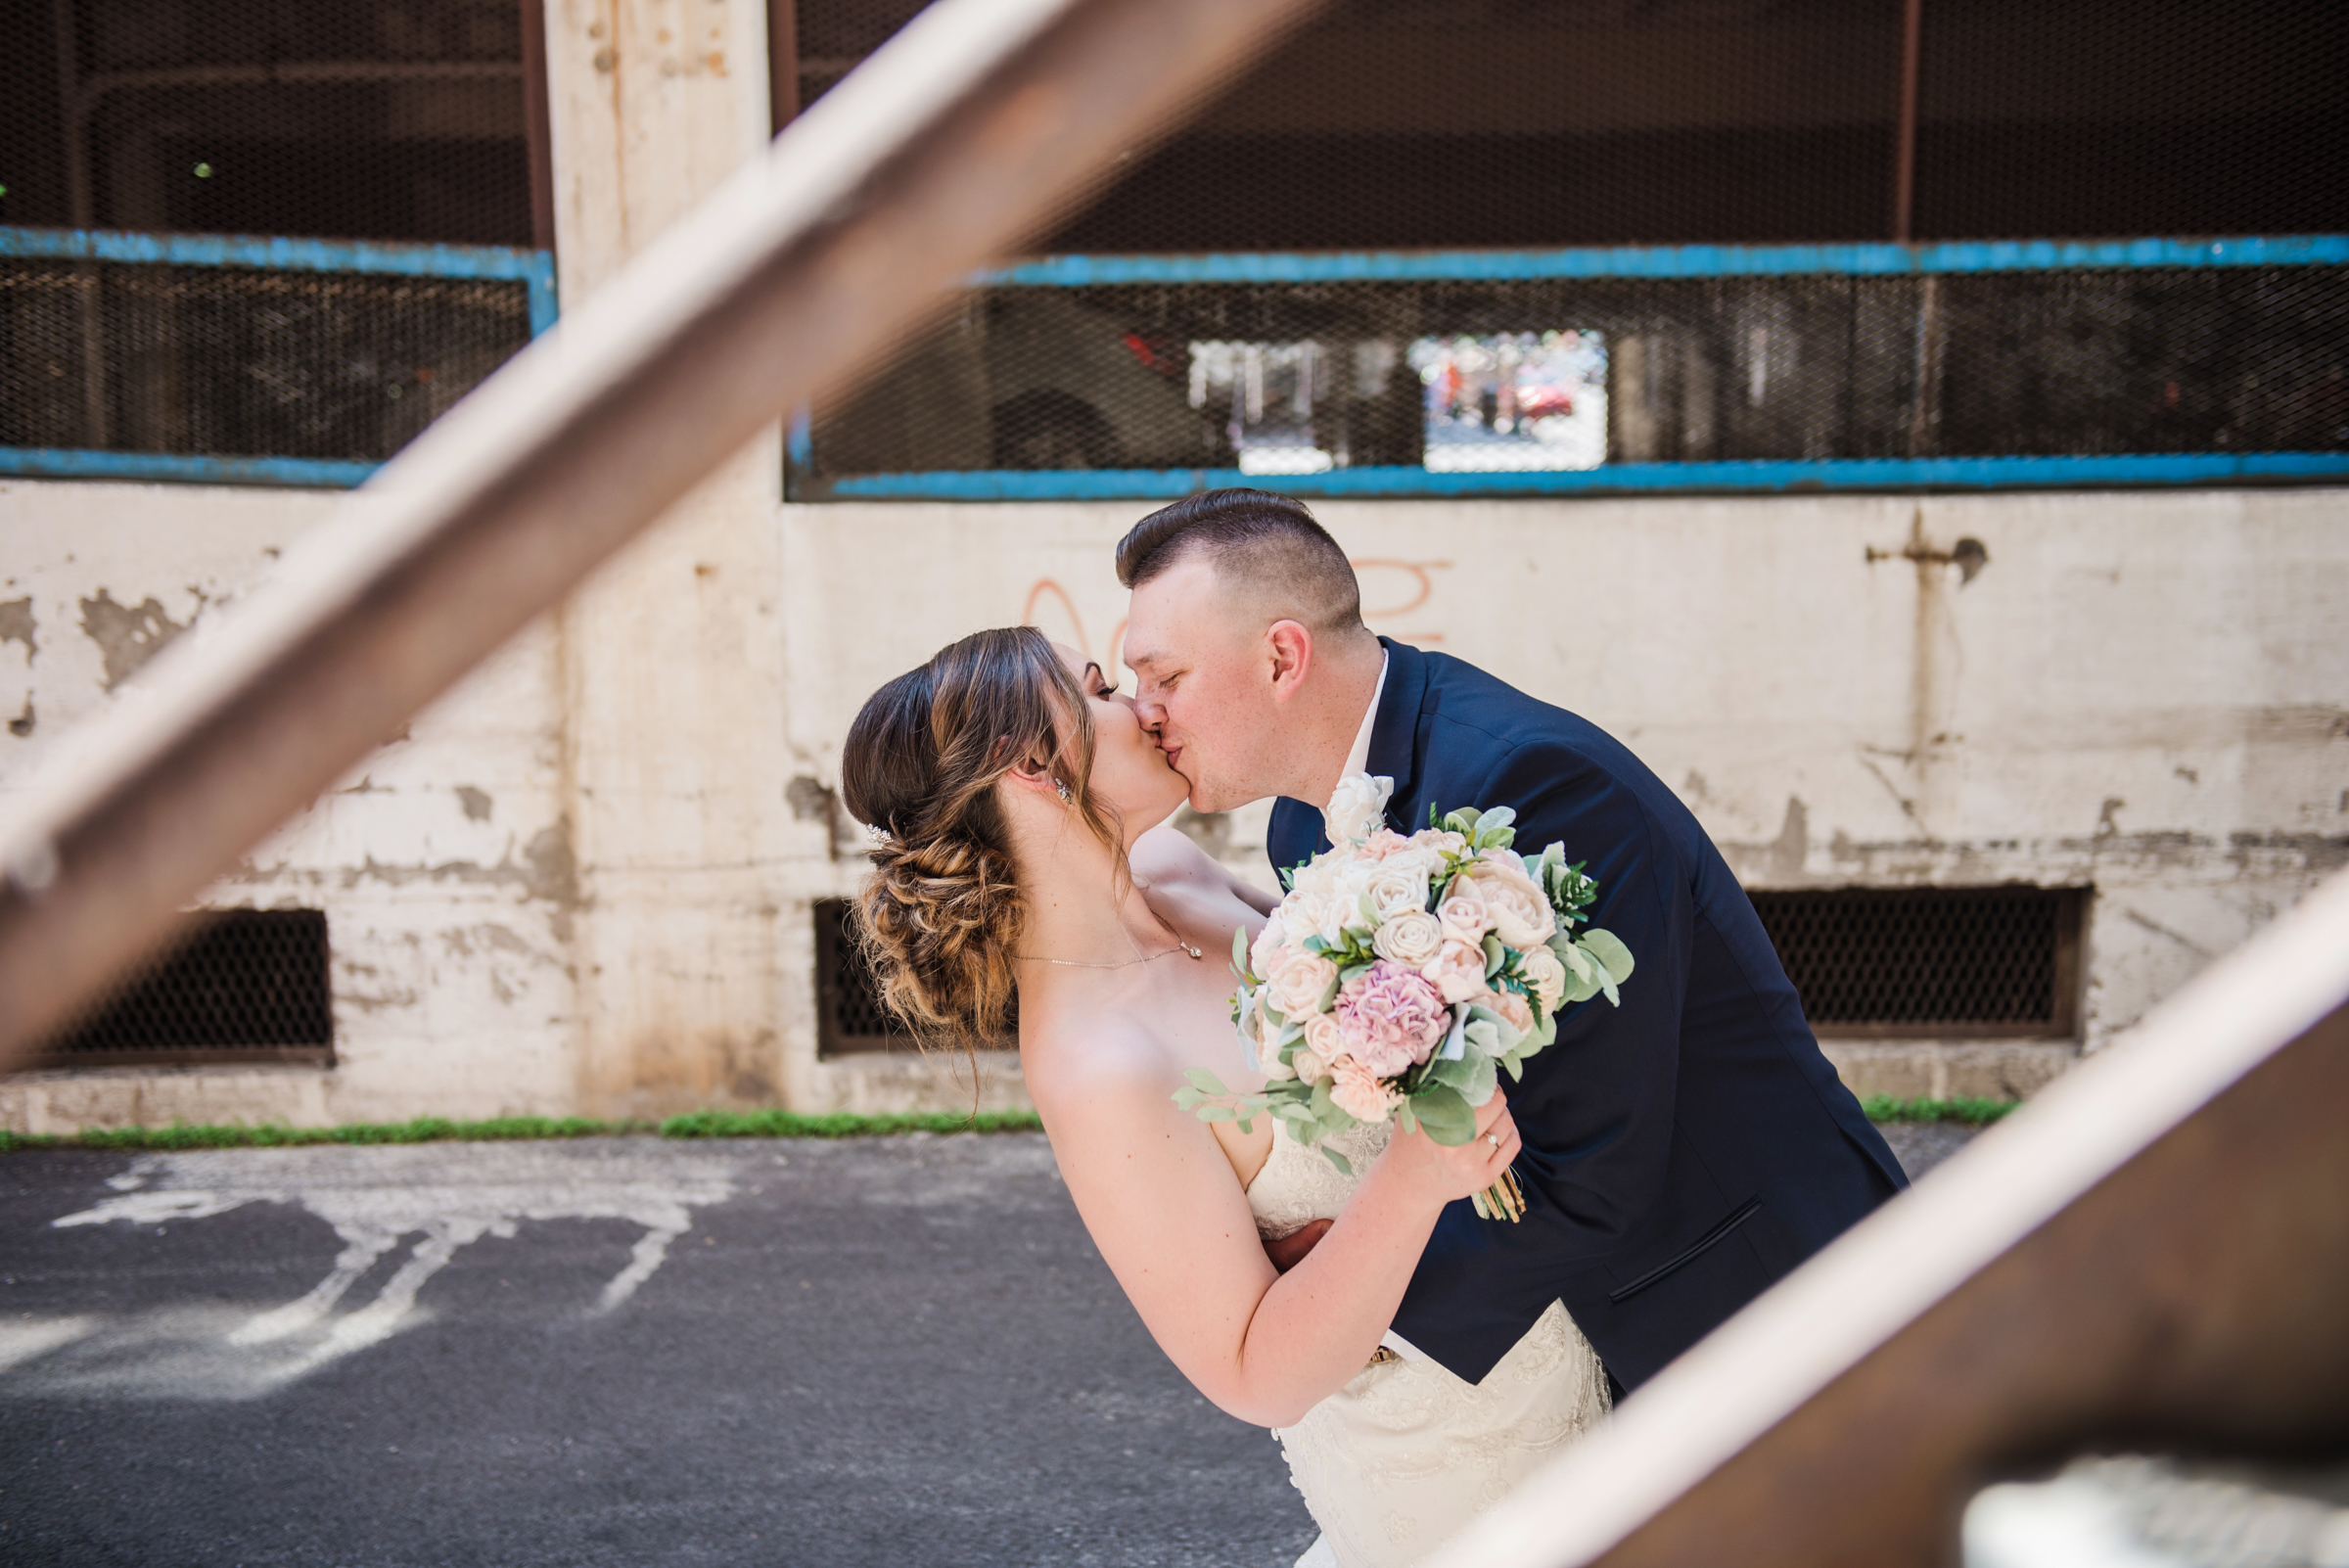 JILL_STUDIO_Wedding_JILL_STUDIO_Rochester_NY_Photographer_6-DSC_2417.jpg